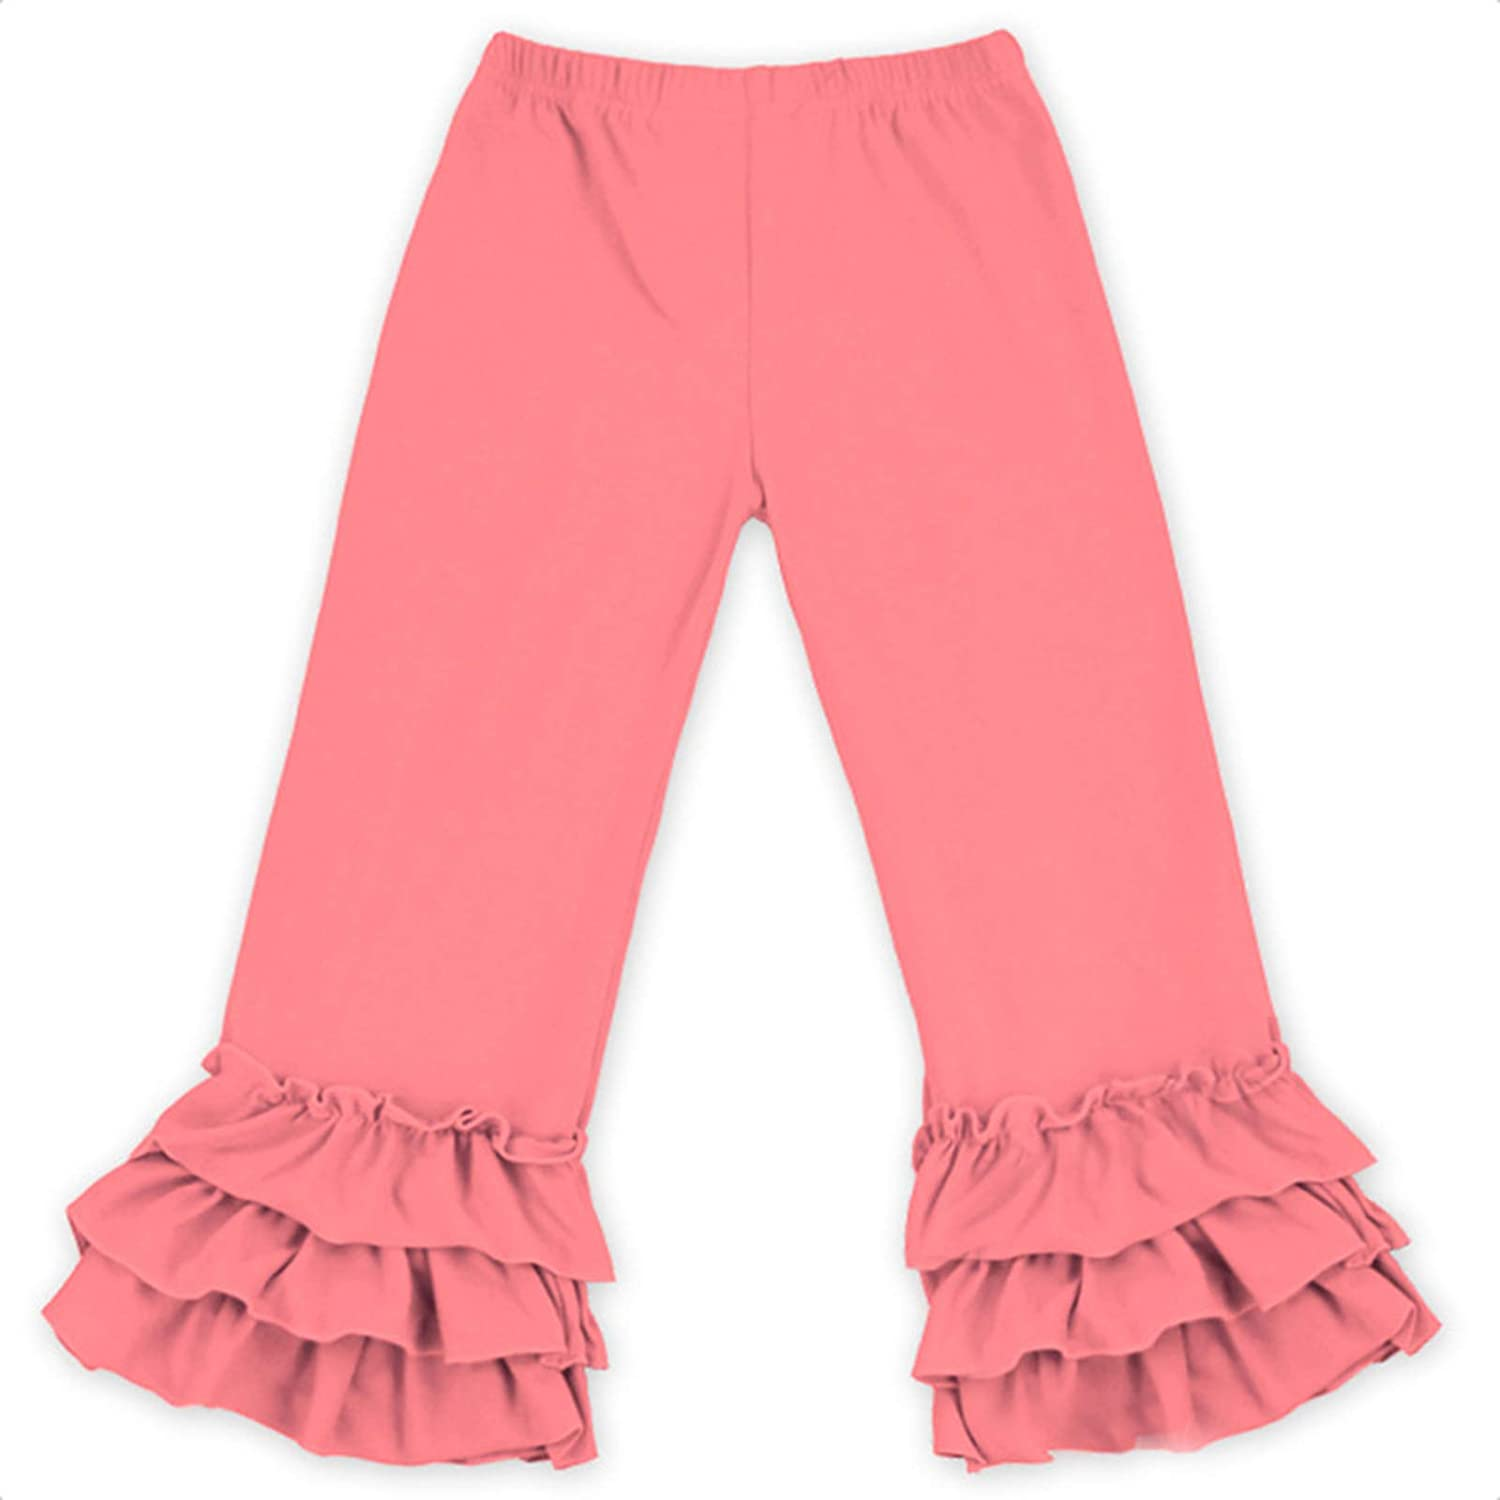 Baby Toddler Little Girls' Ruffle Soft Solid Luxury goods Leggings Ranking integrated 1st place Cotton Fla